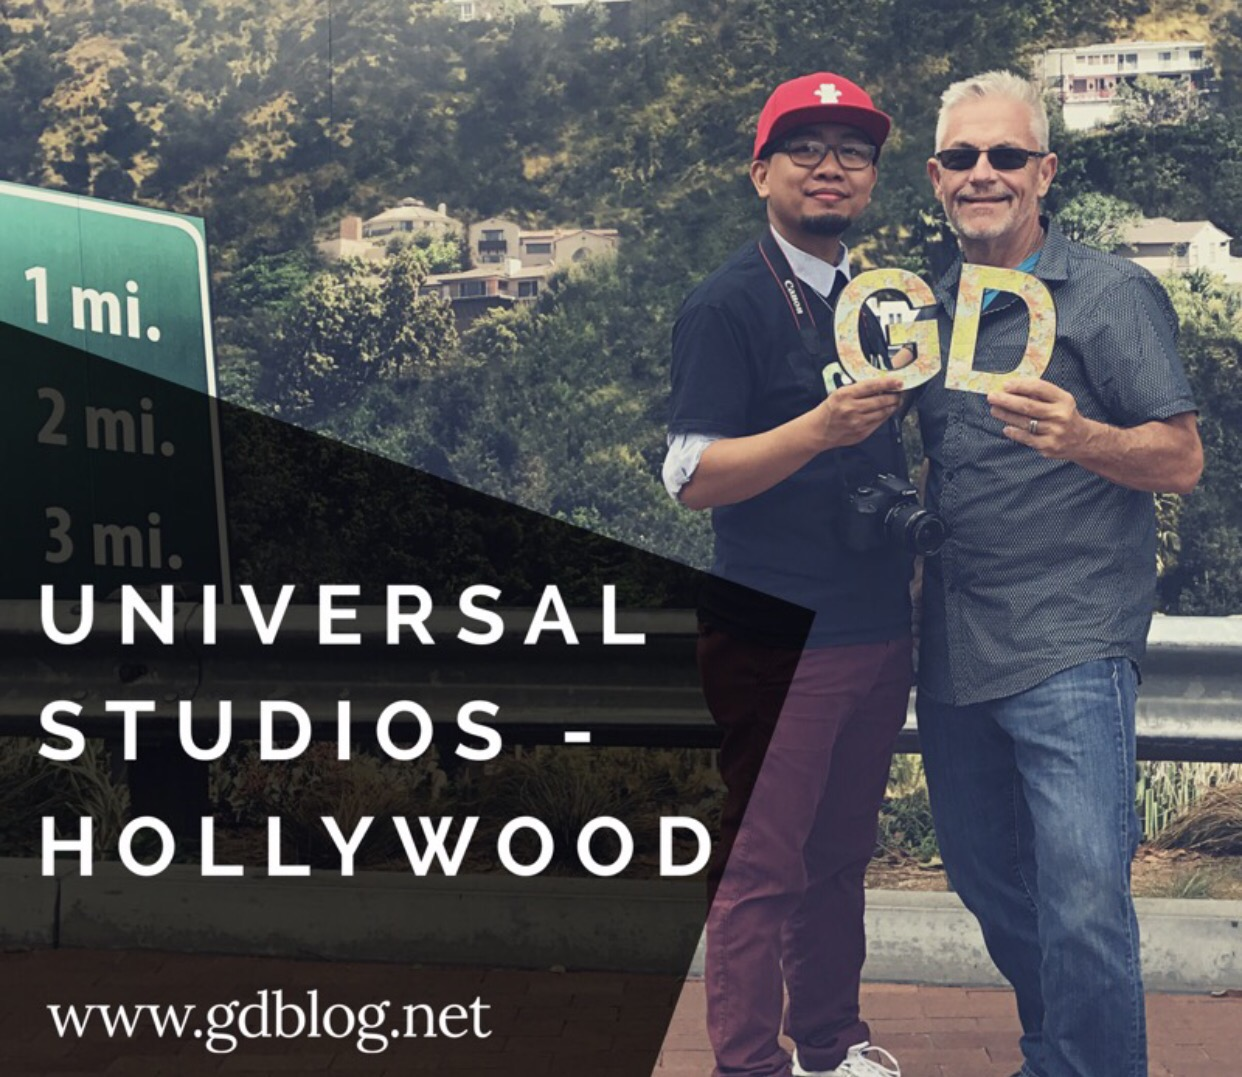 Universal Studios – Hollywood (G&D Weekend Trip)